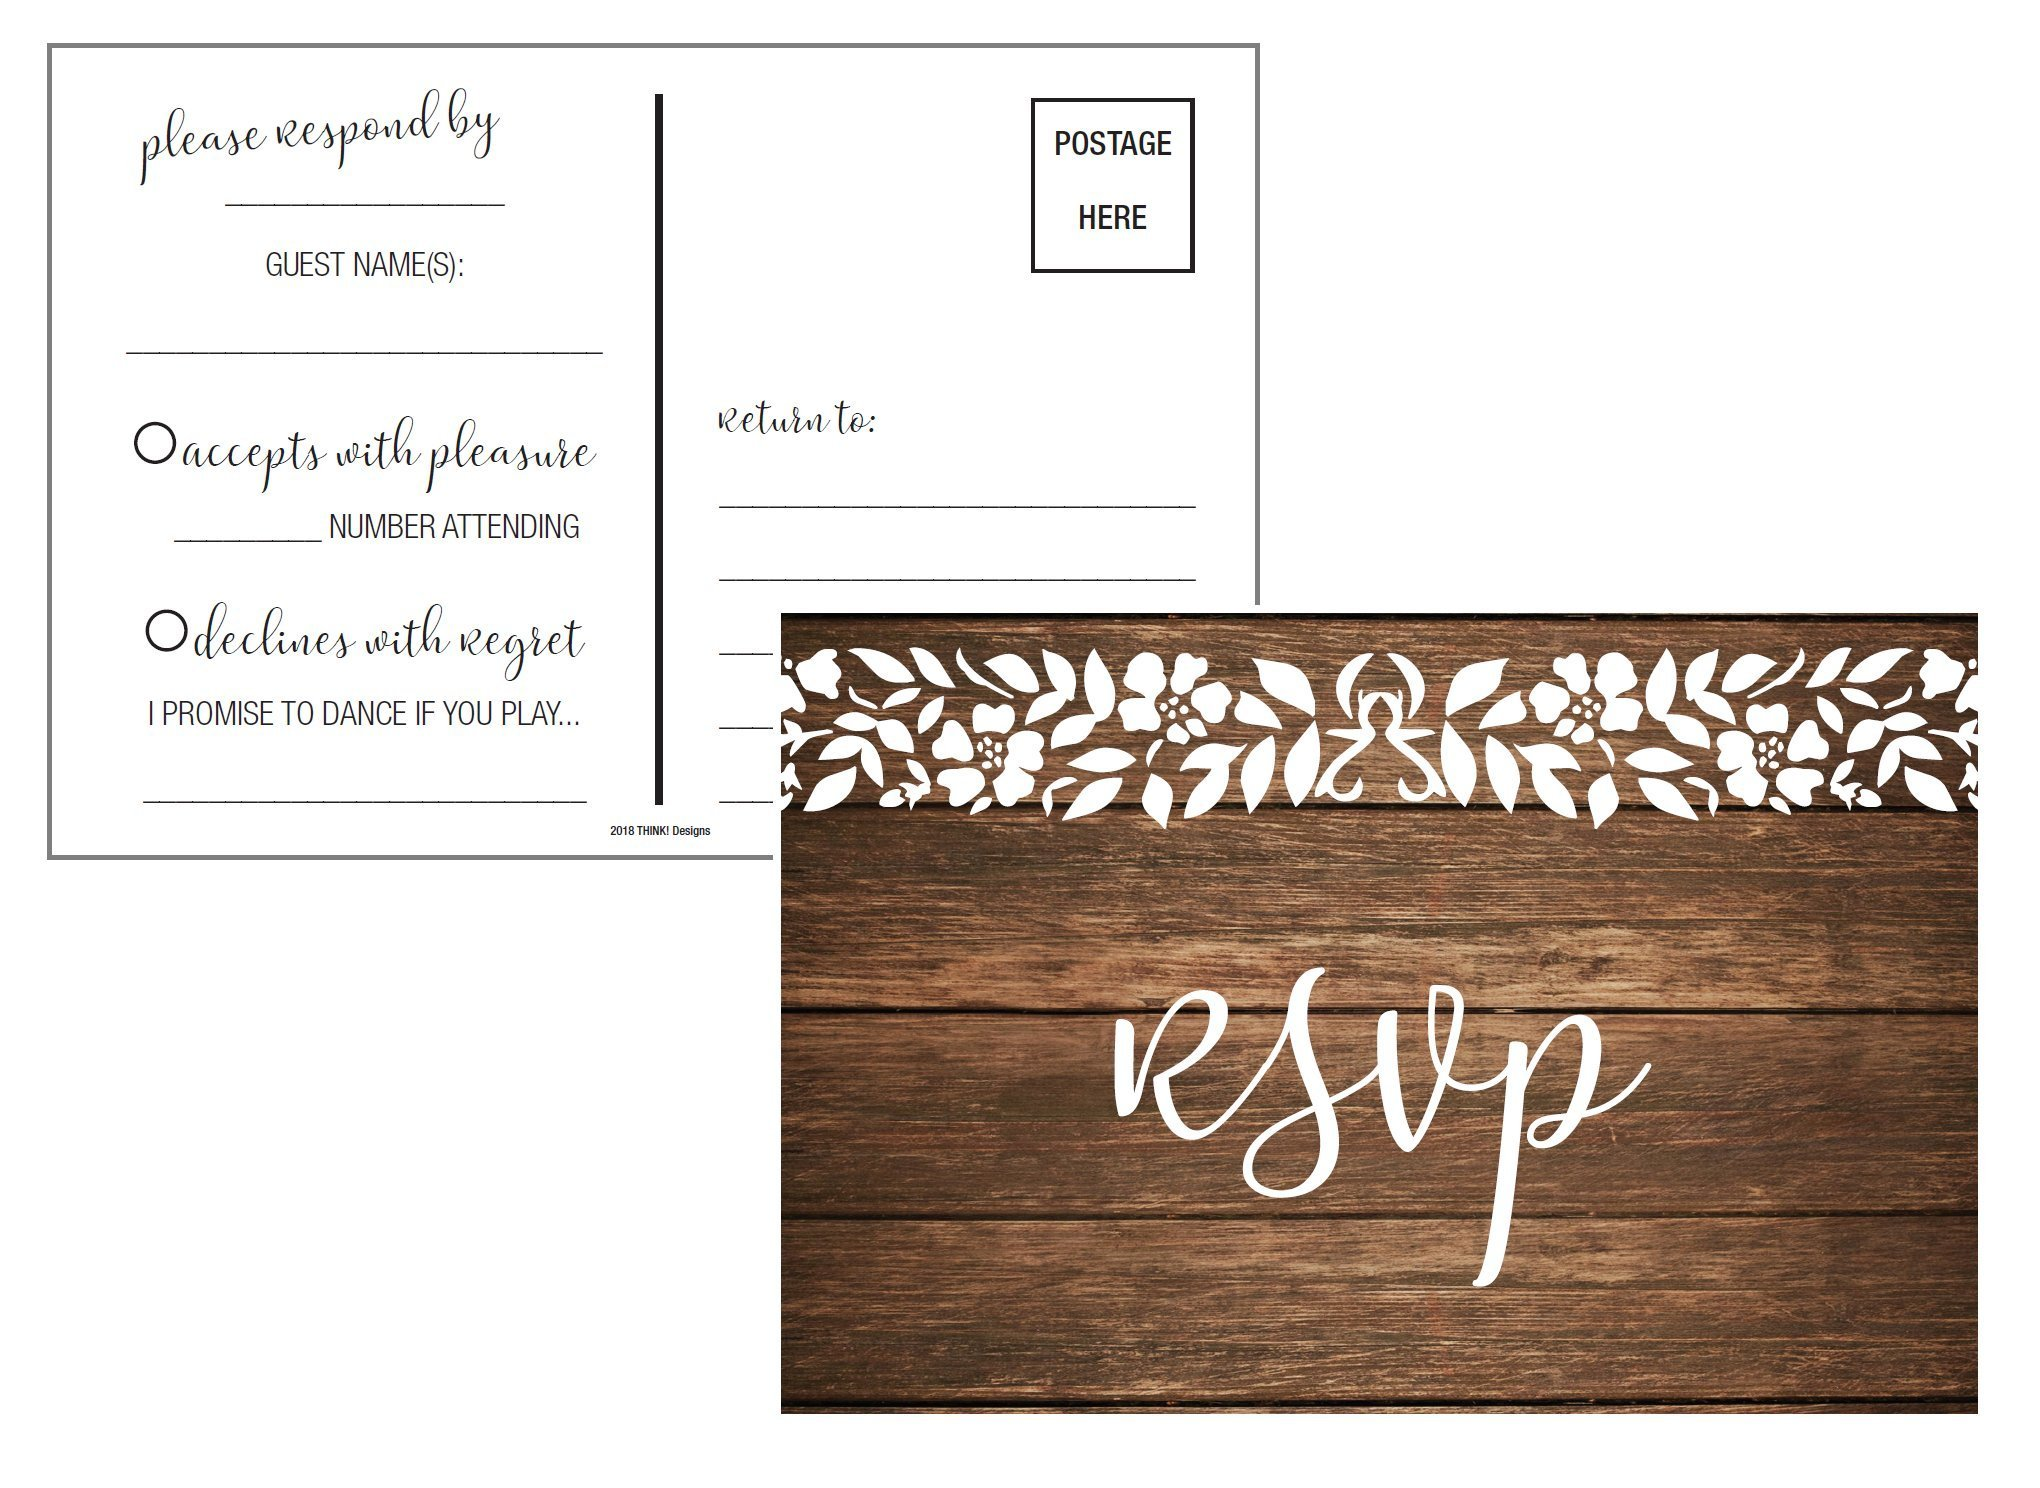 RSVP Cards | Wood Rustic White Lace | RSVP Postcards No Envelopes Needed | Response Reply Card Kit | 50 4x6 cards by Think! Trading Co